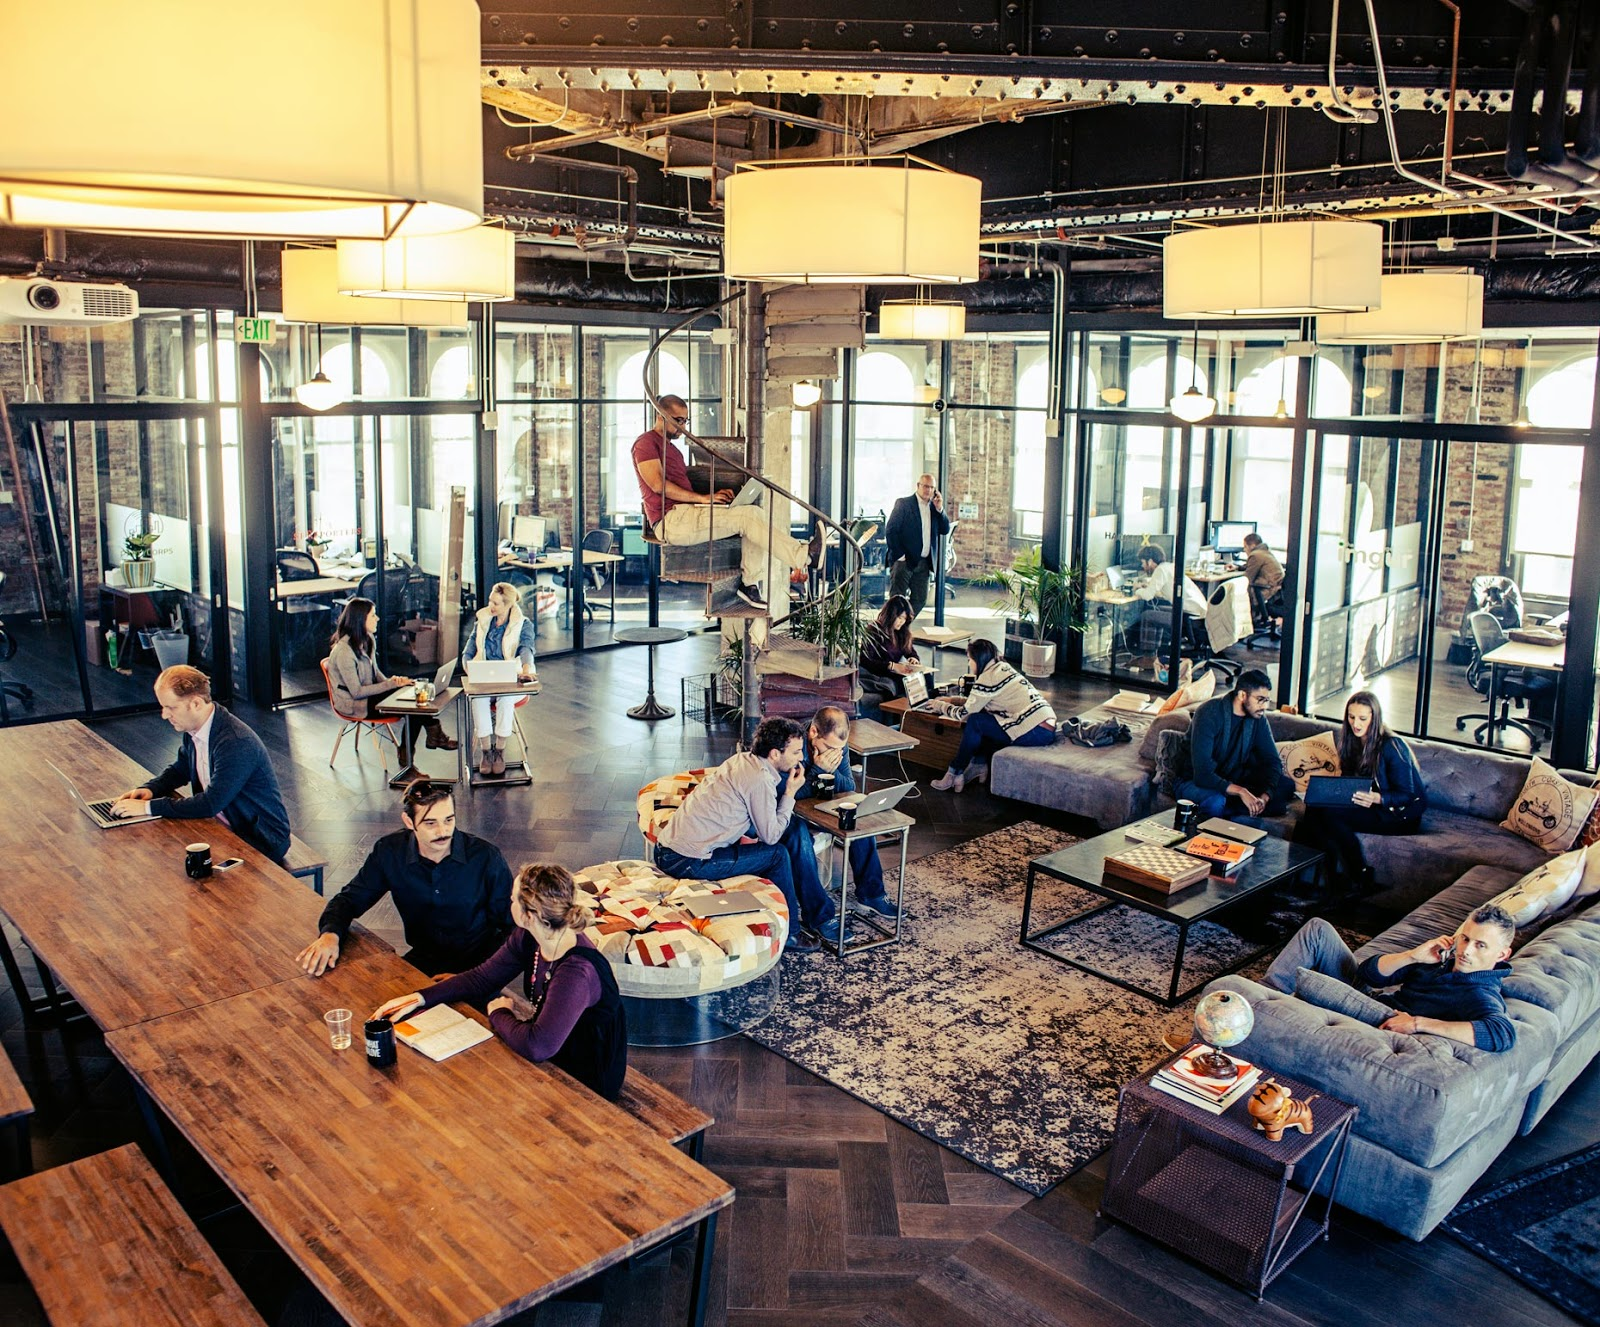 tips for open office space etiquette